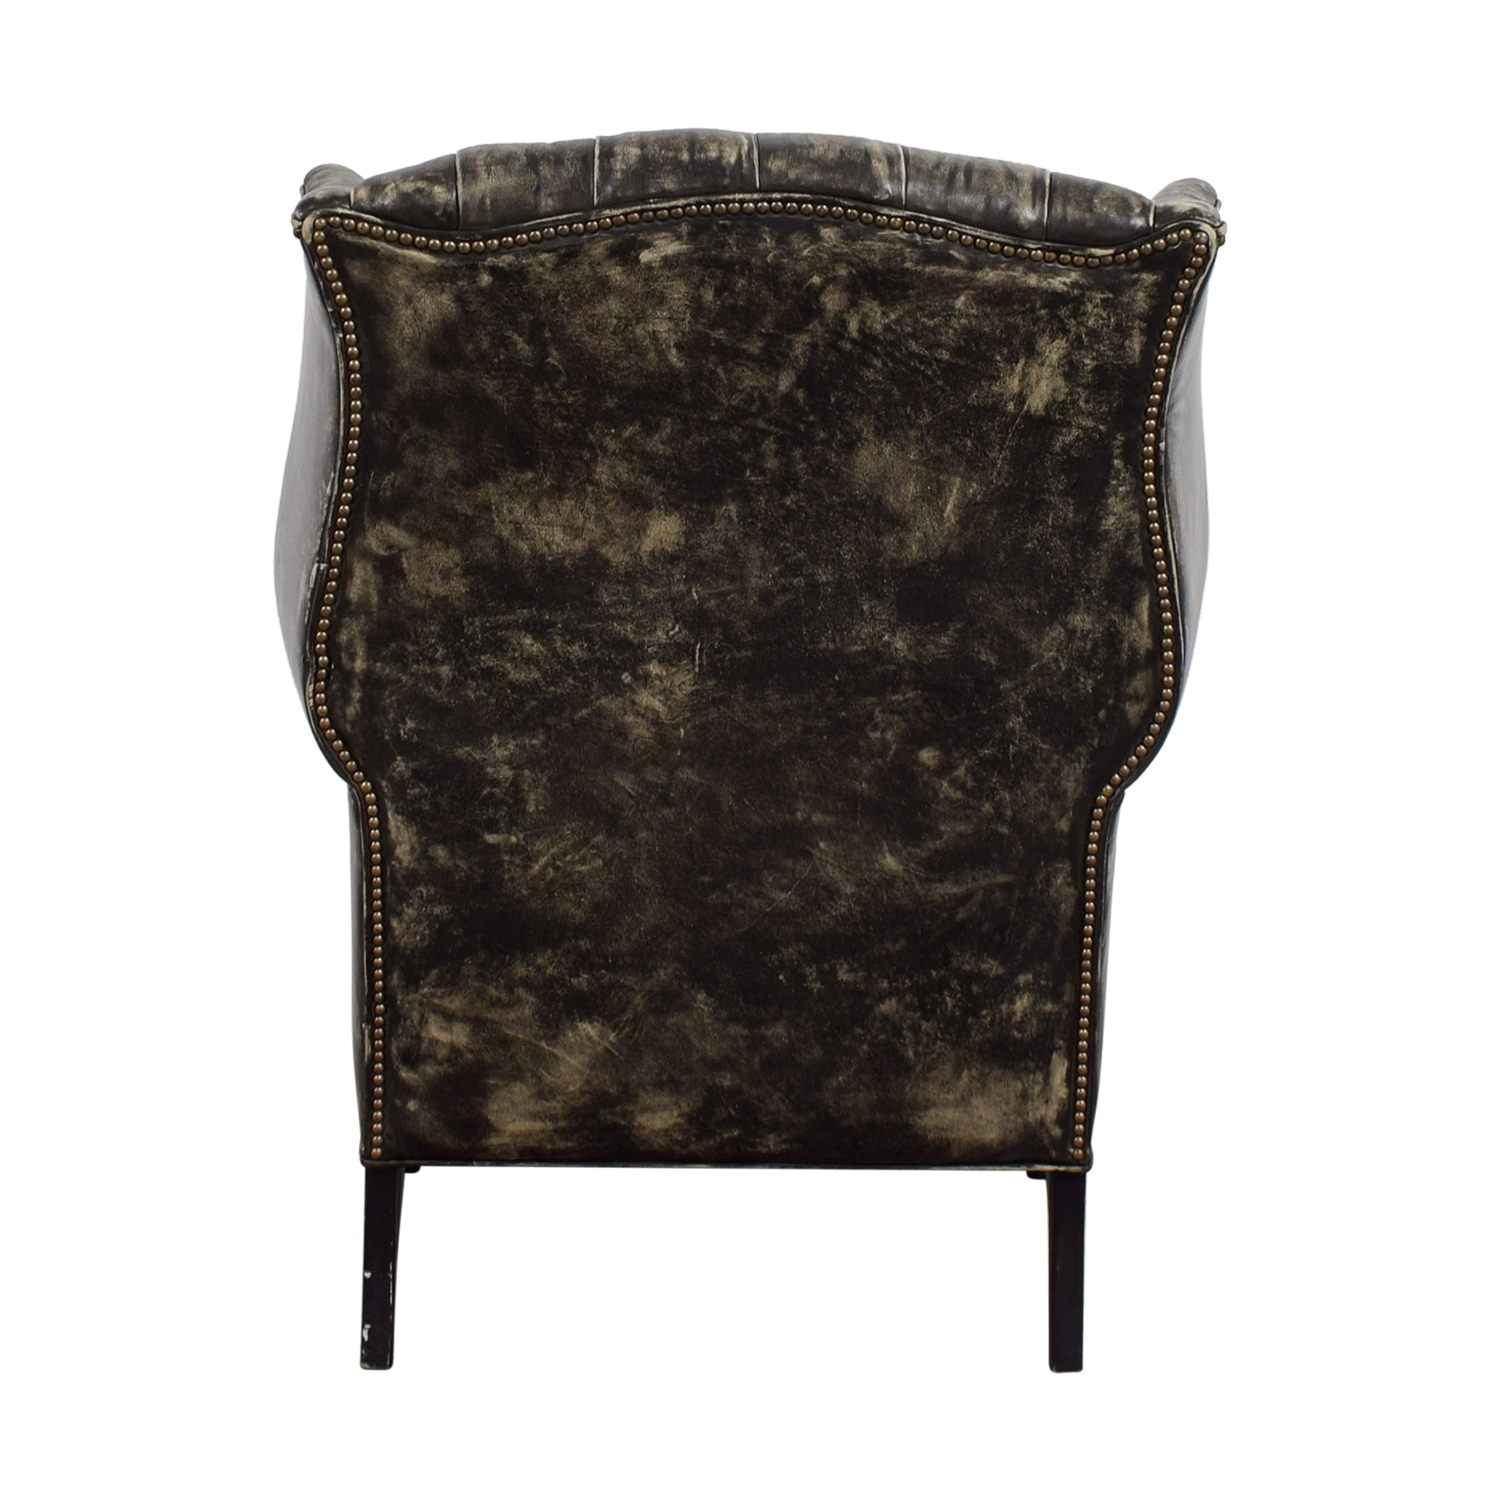 Restoration Hardware Restoration Hardware Wingback Distressed Black and Cream Leather Chair price